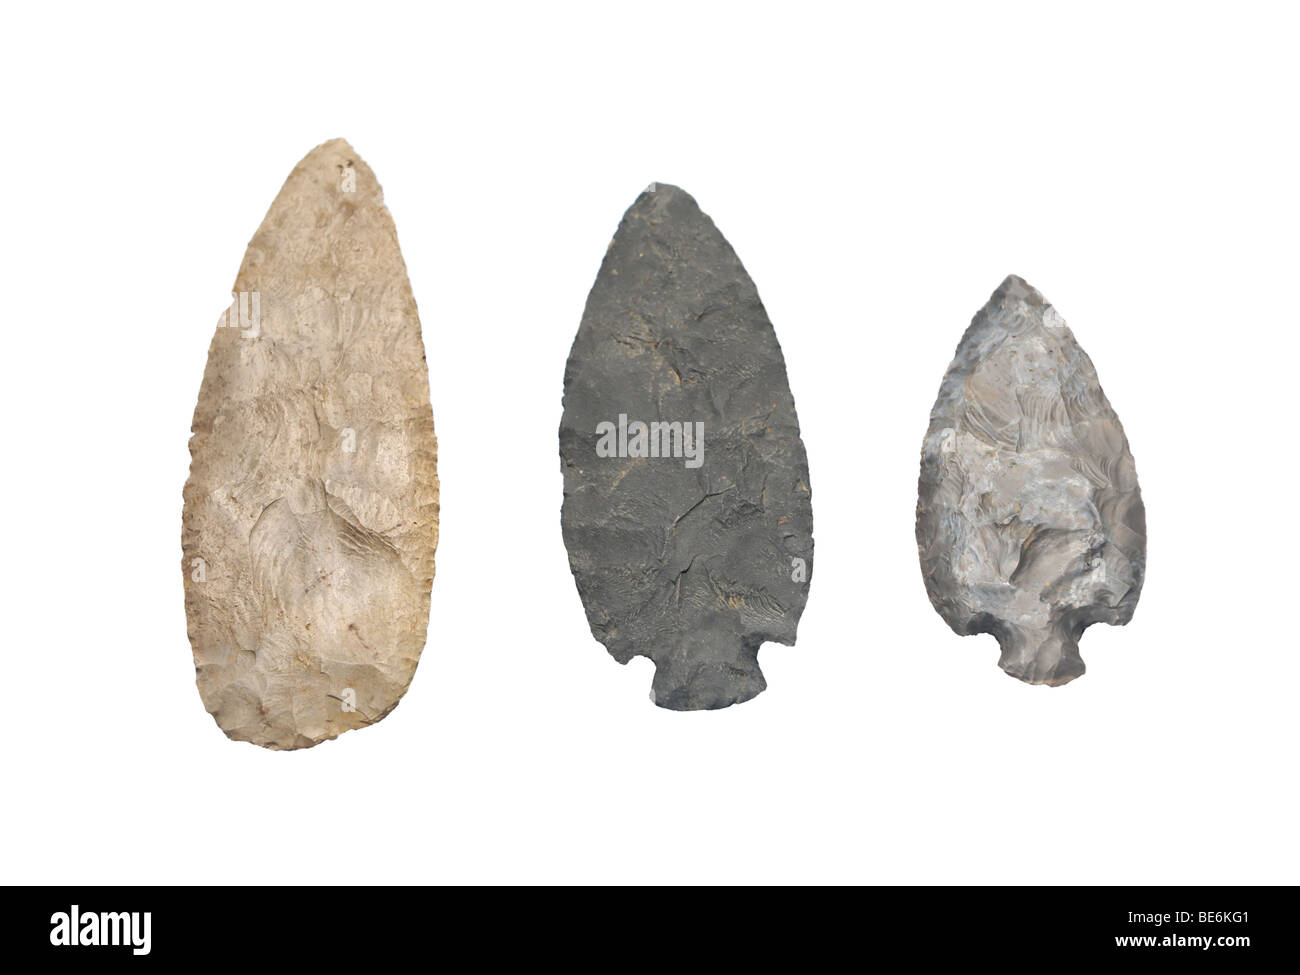 Native American spear points made of stone - Stock Image